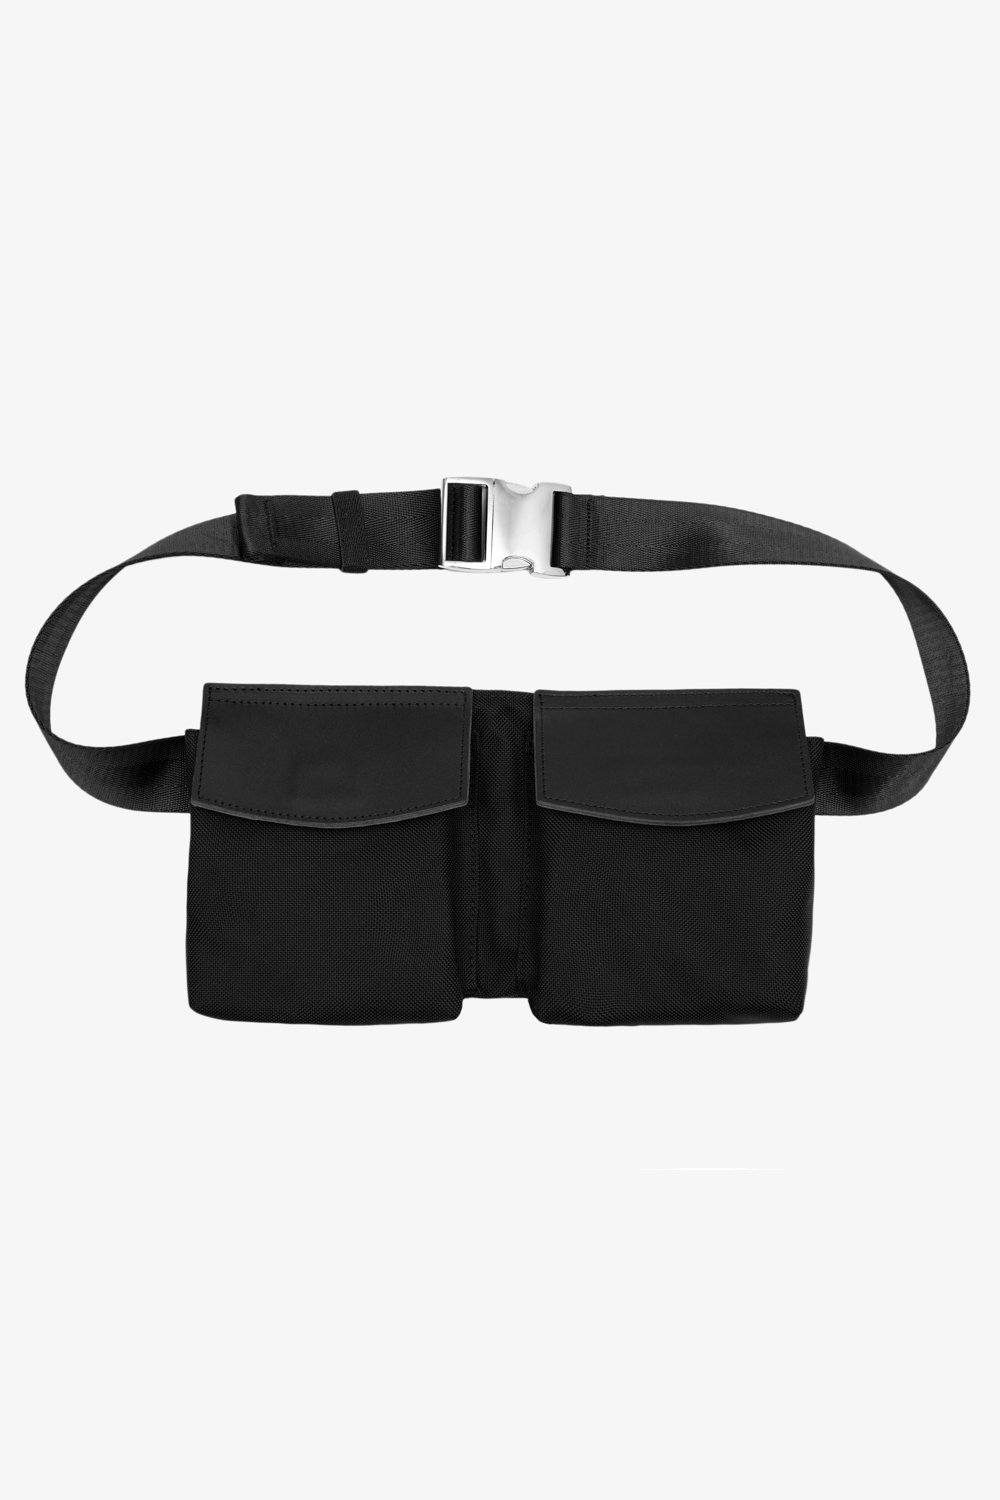 Billie Belt Bag - Gray Jack + Mulligan Black